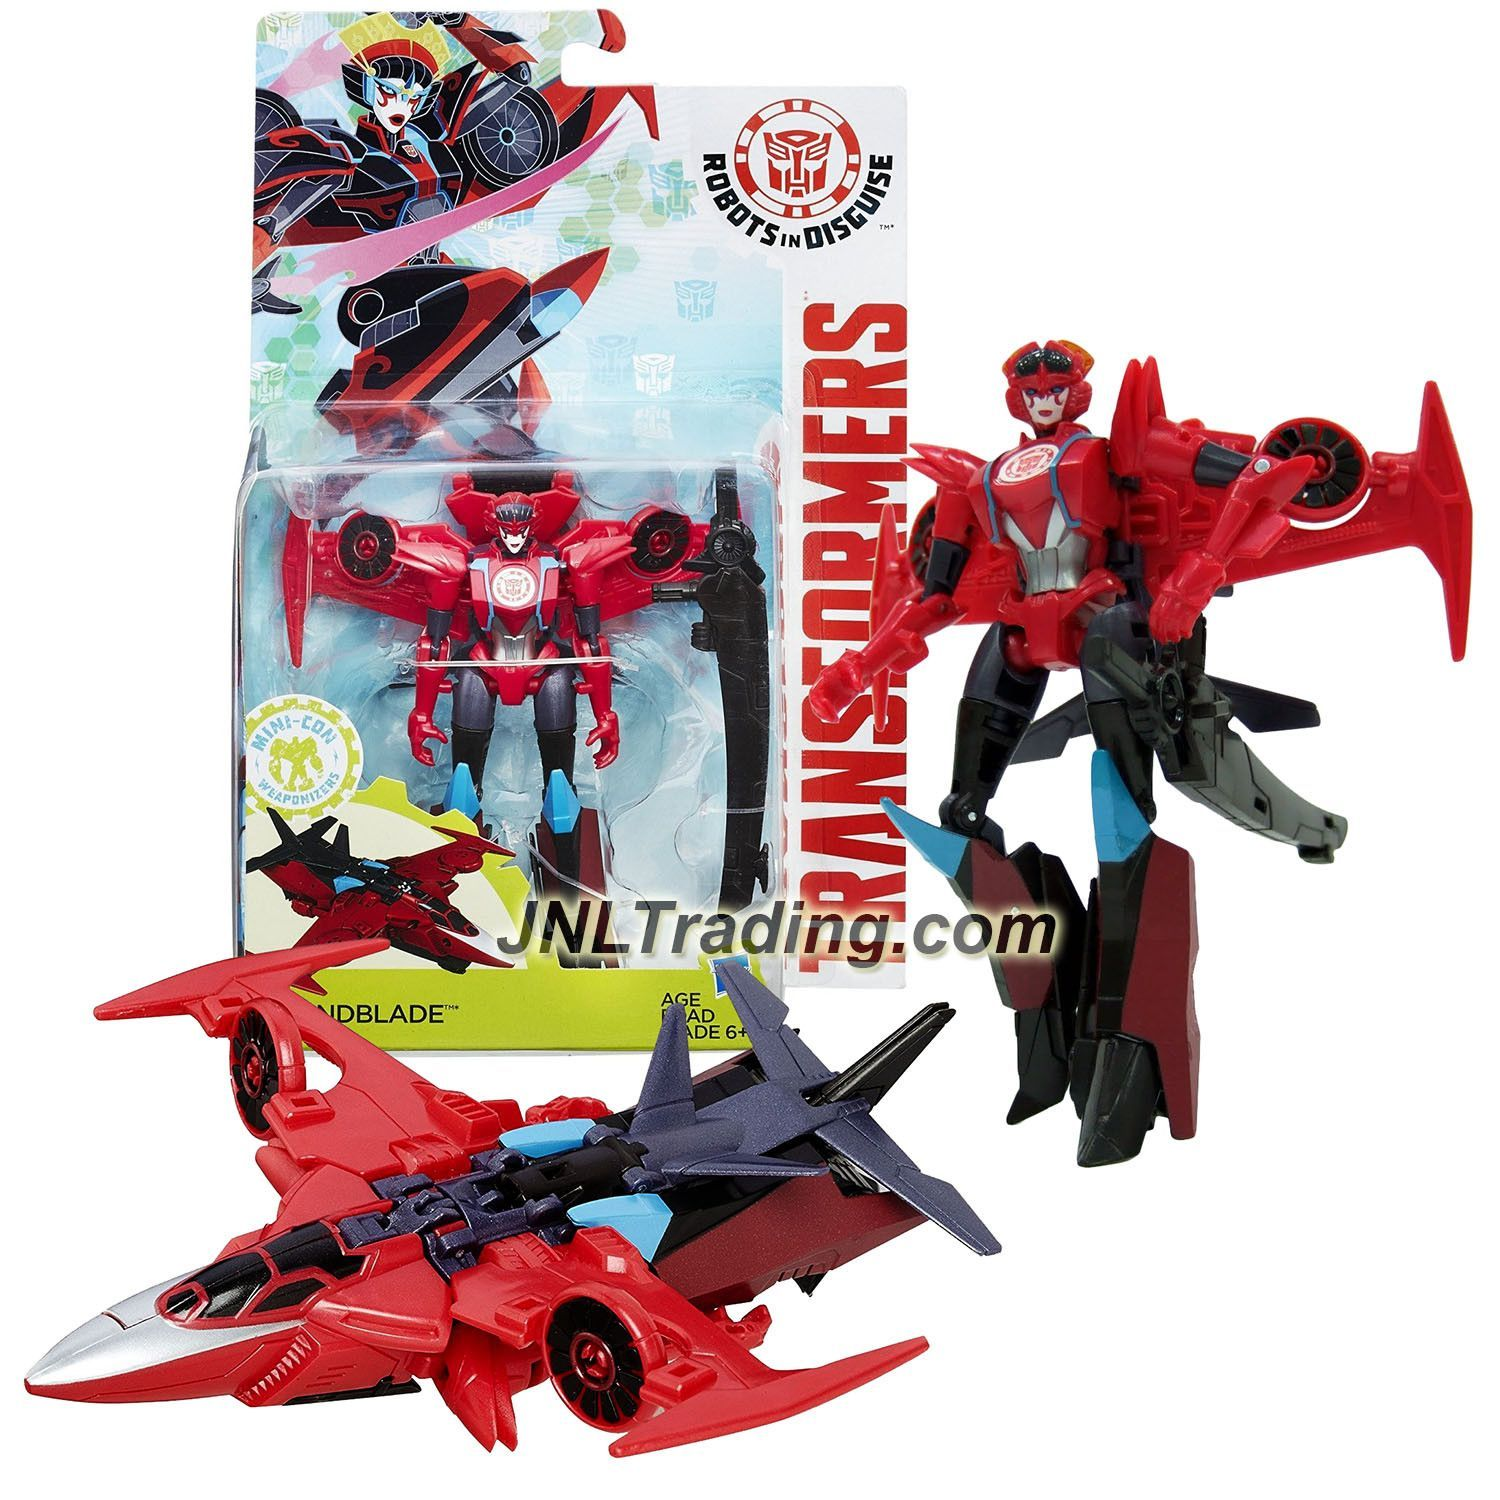 Transformers Robots in Disguise AUTOBOT DRIFT Deluxe Class Figure HASBRO Sealed